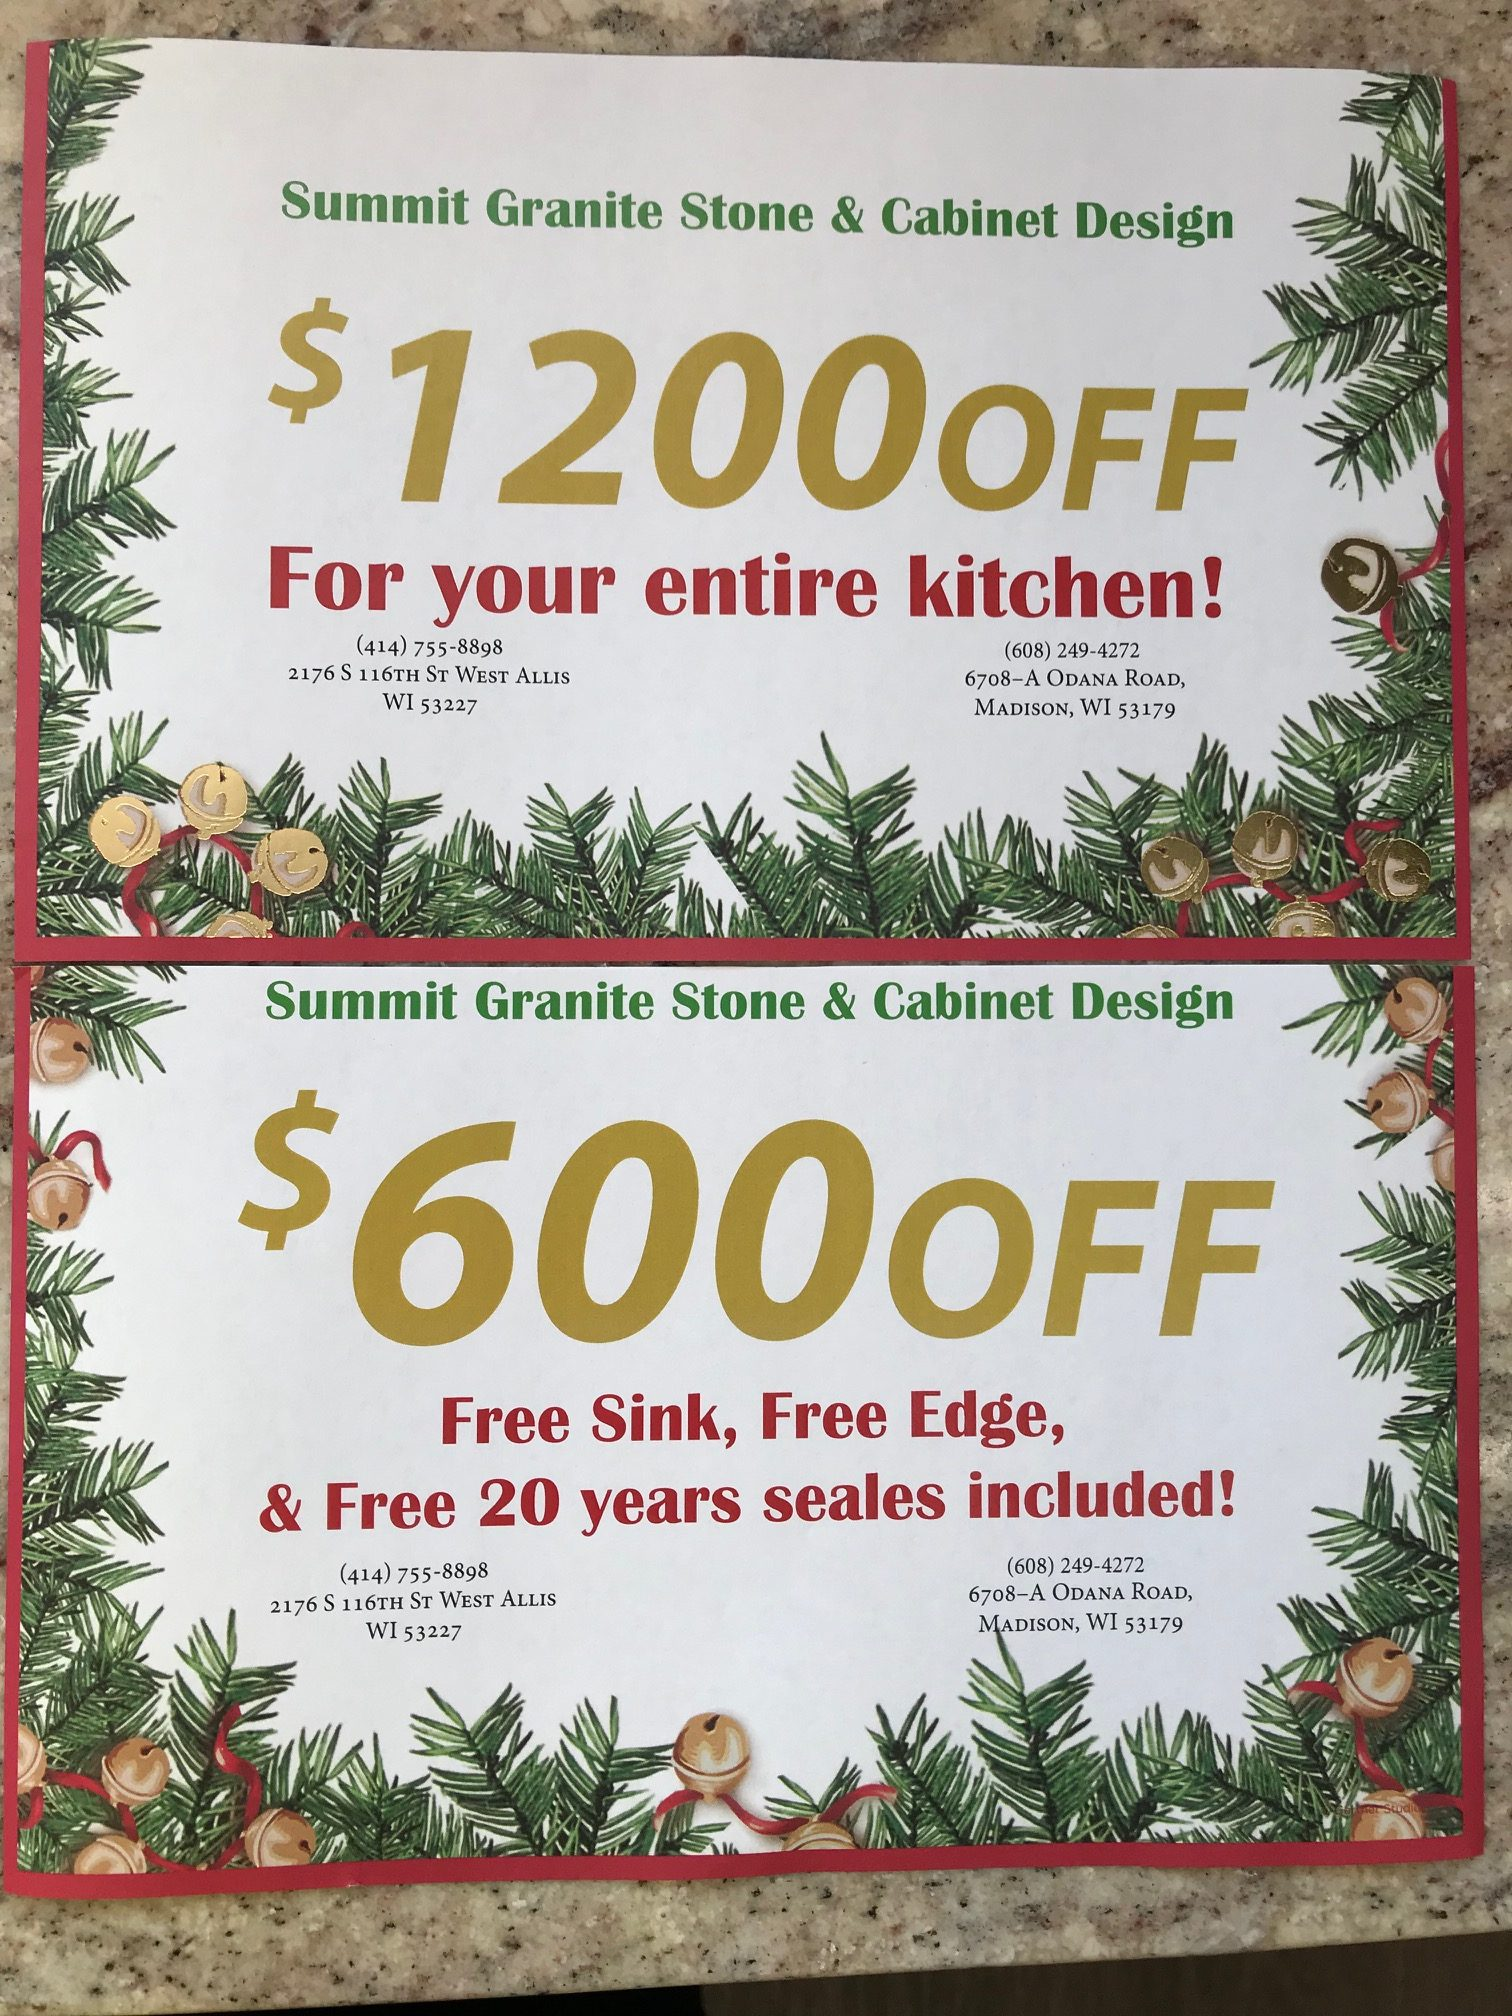 Save money this holiday season on creating your dream kitchen